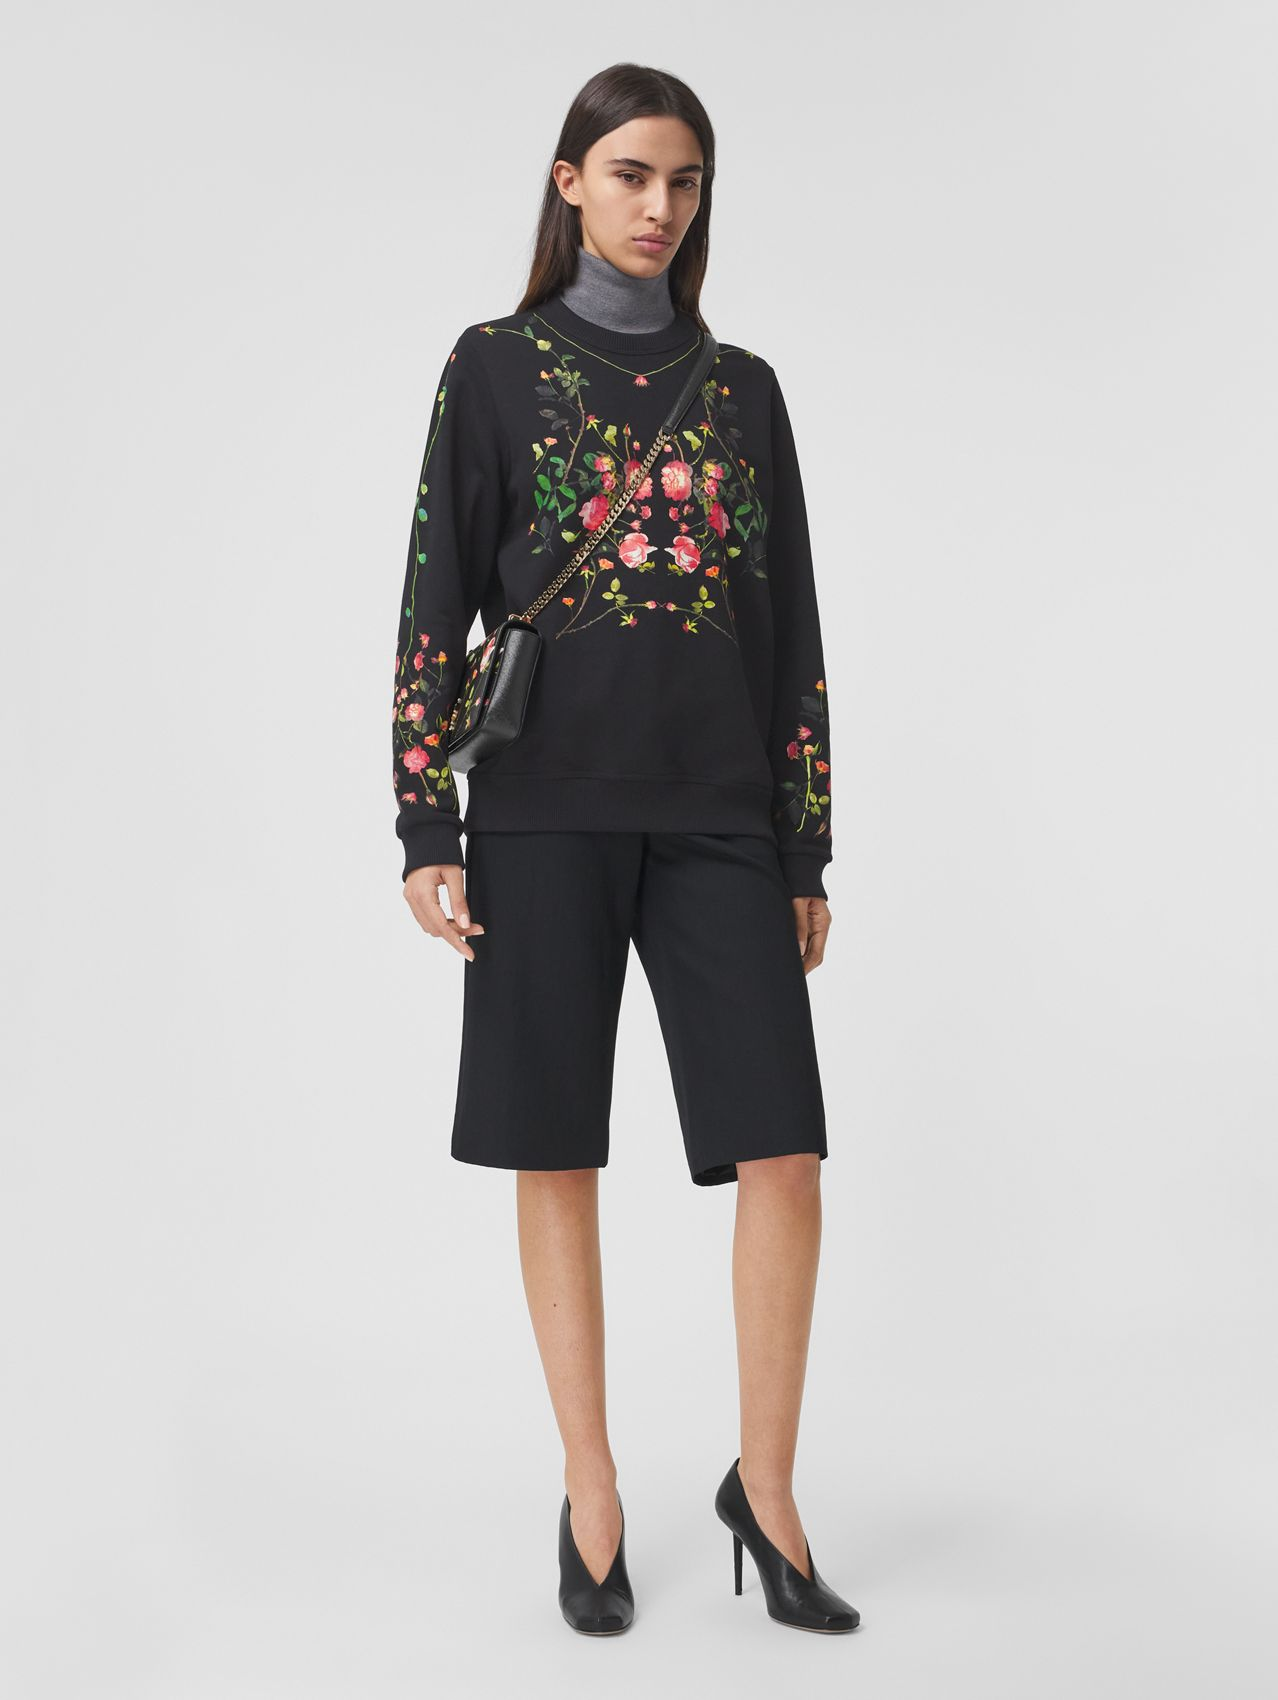 Rose Print Cotton Oversized Sweatshirt in Black